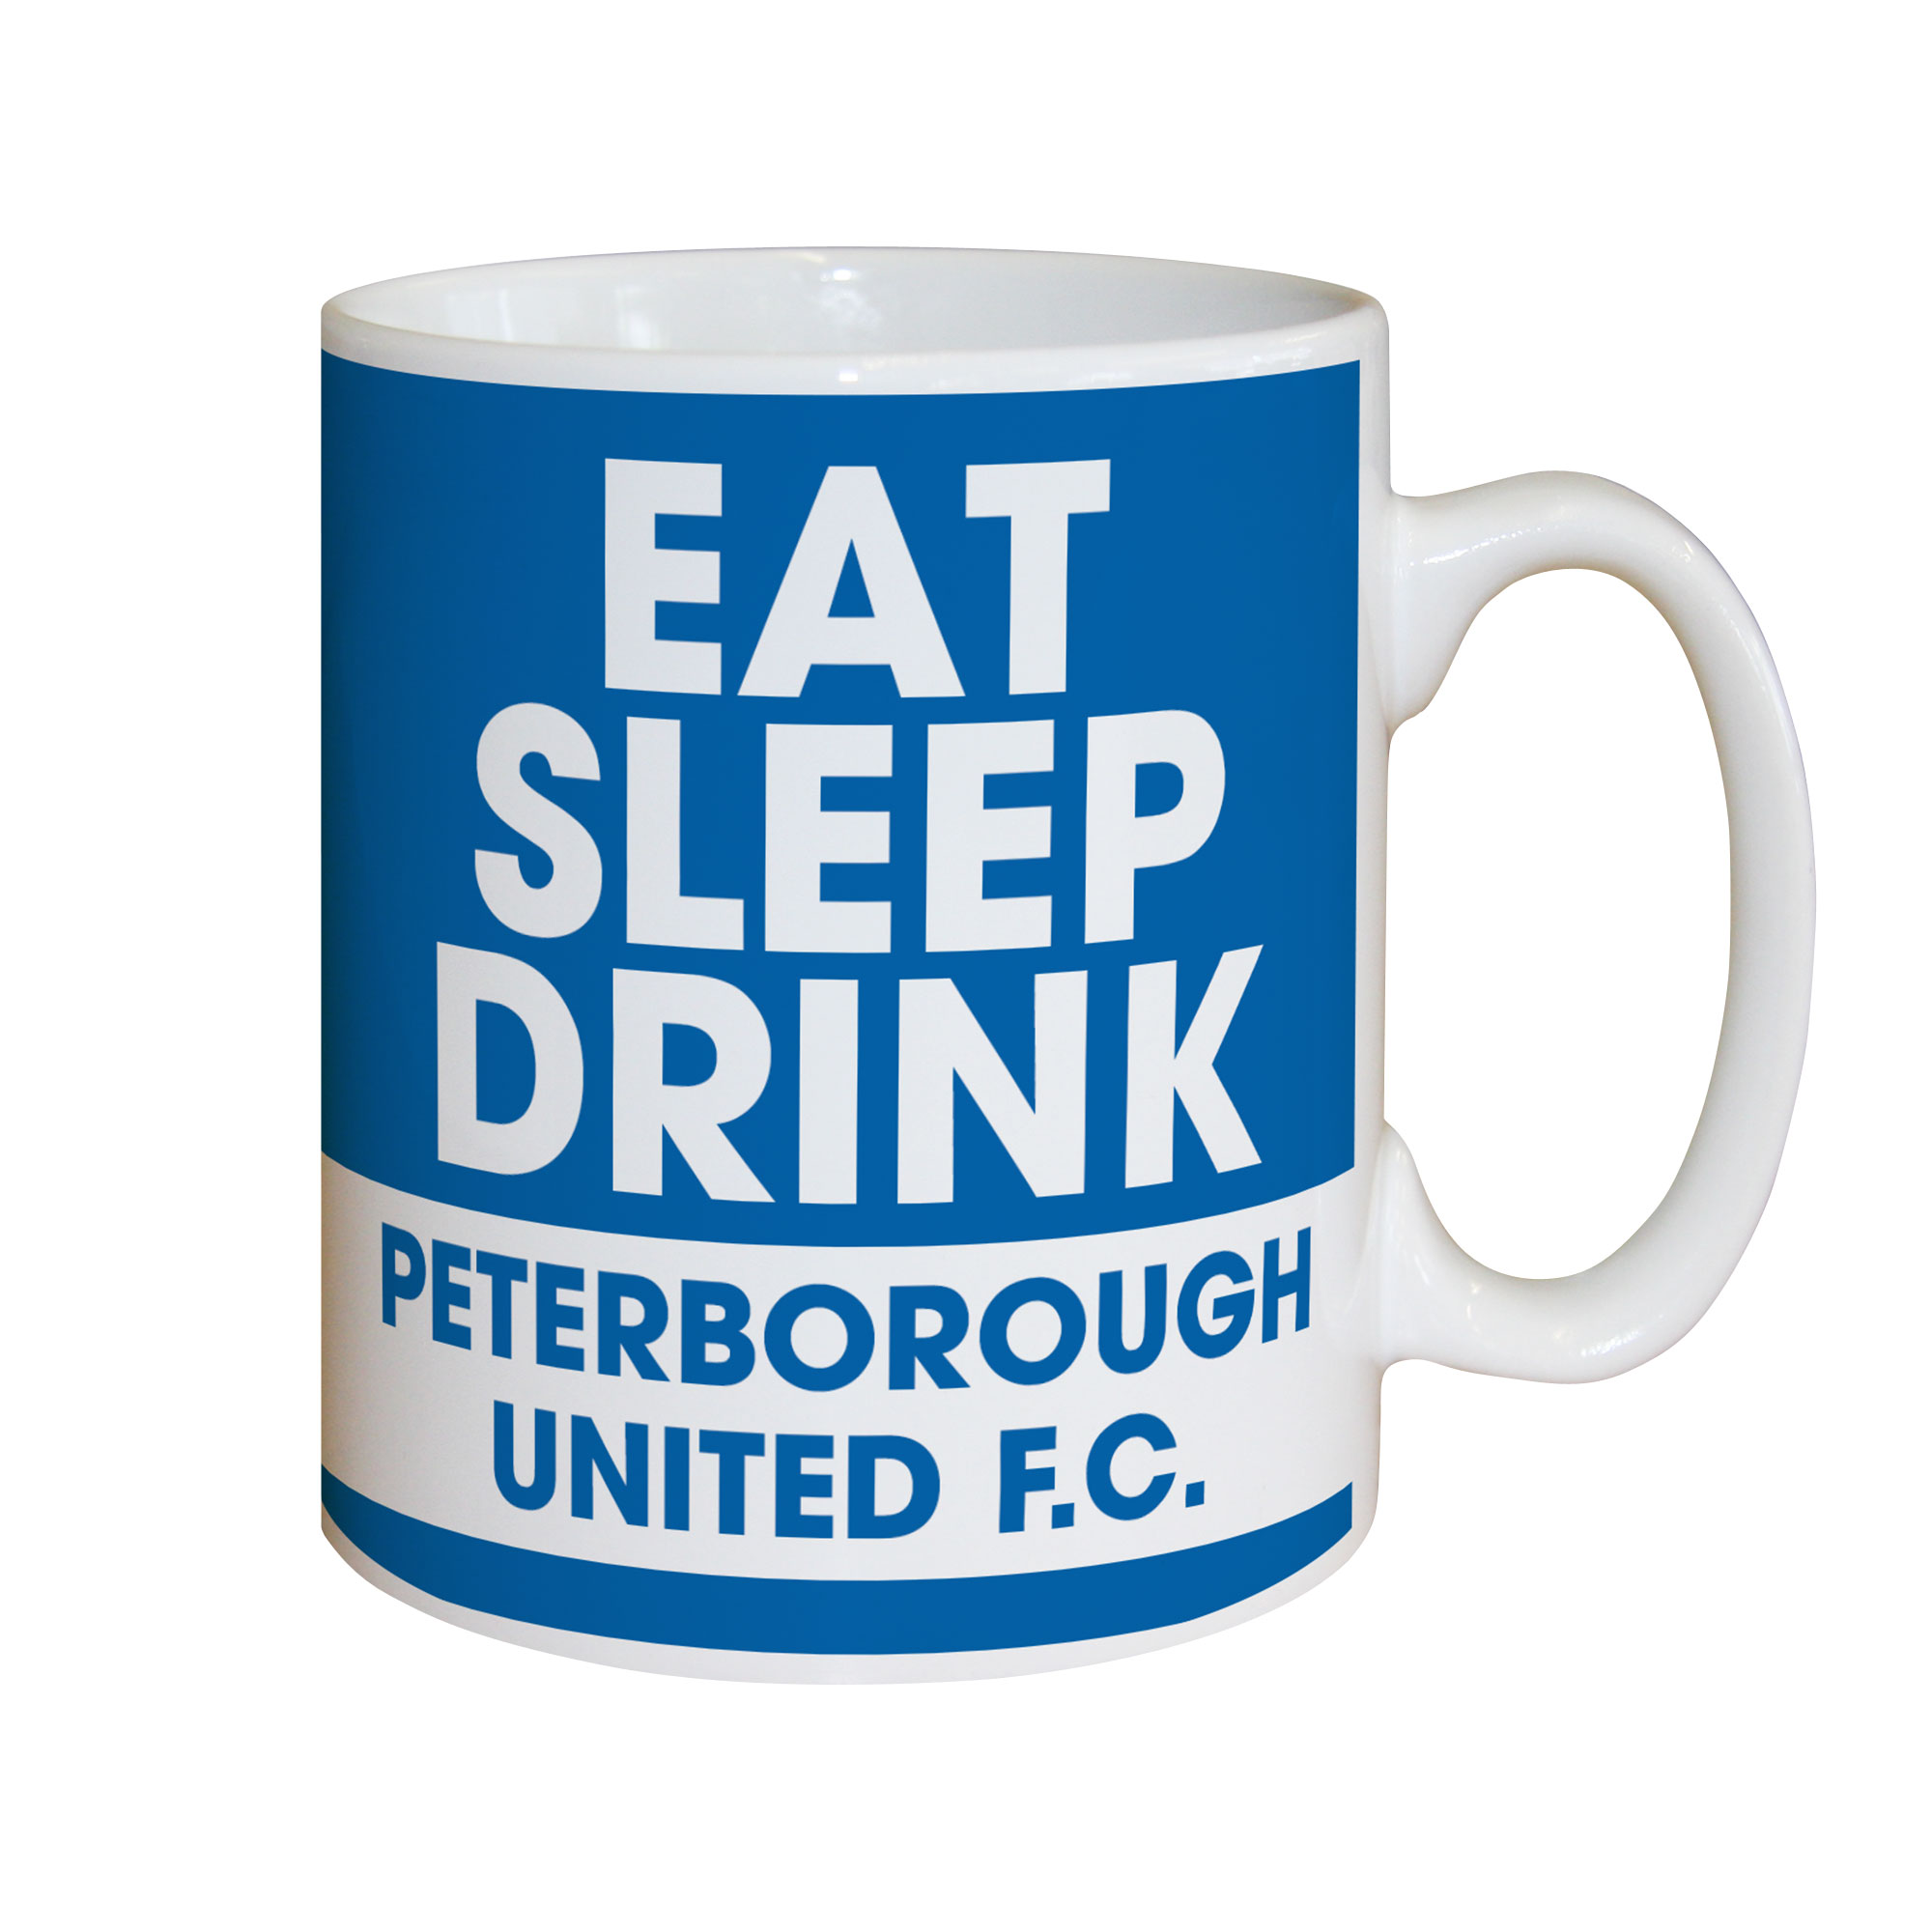 Peterborough United FC Eat Sleep Drink Mug